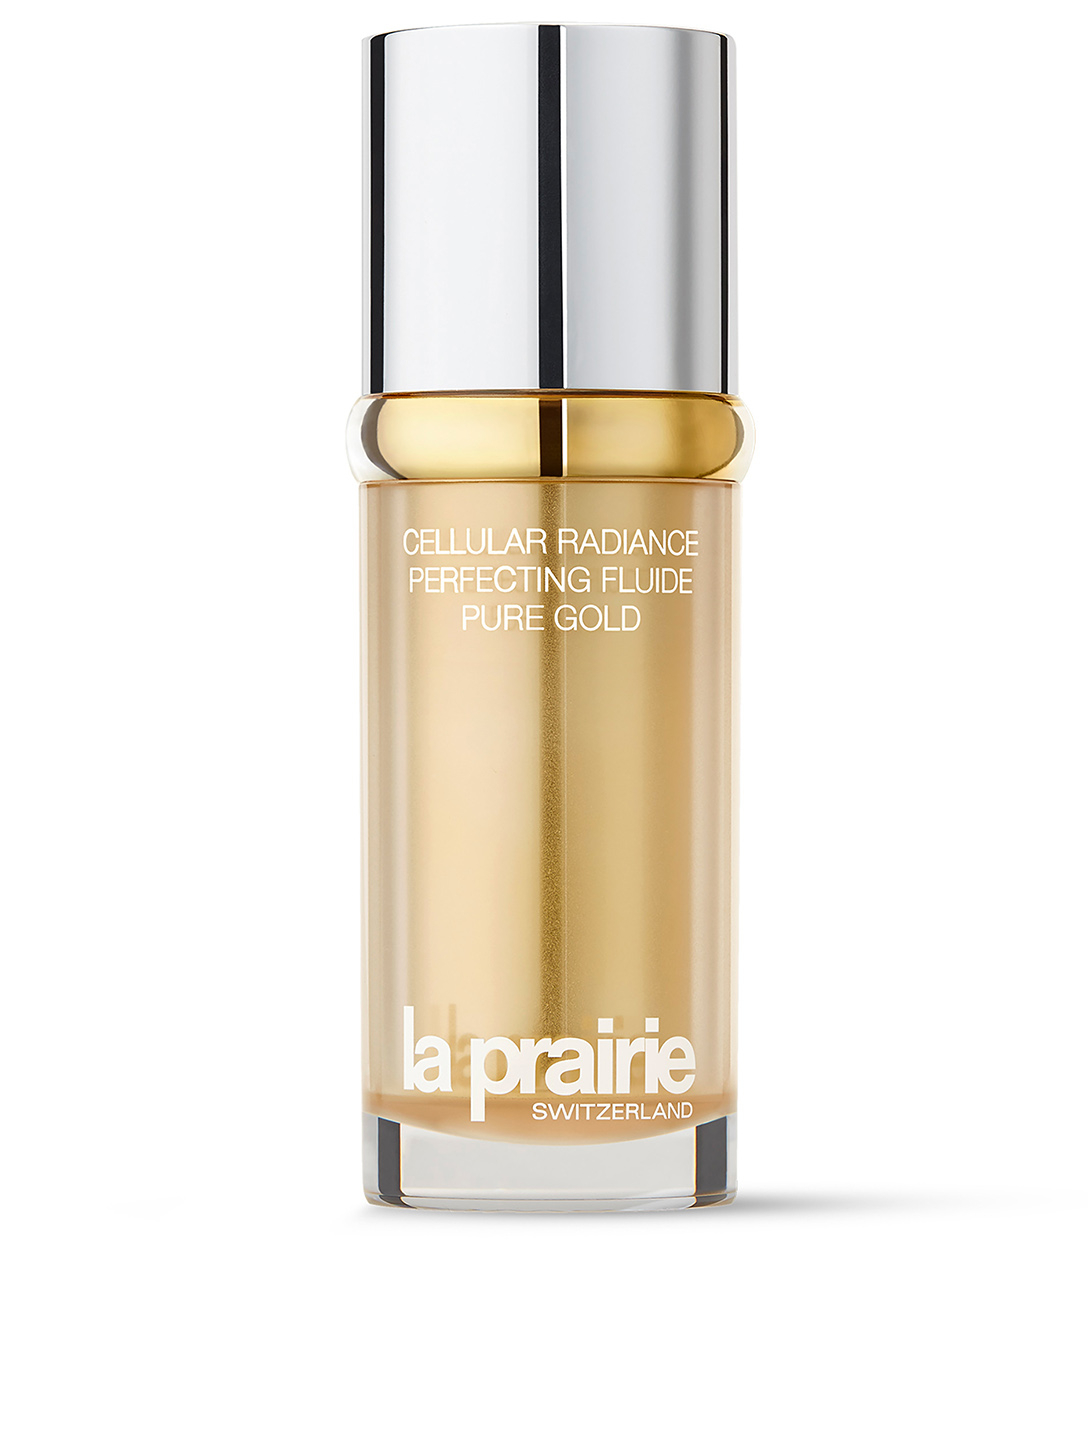 LA PRAIRIE Cellular Radiance Perfecting Fluide Pure Gold Beauty